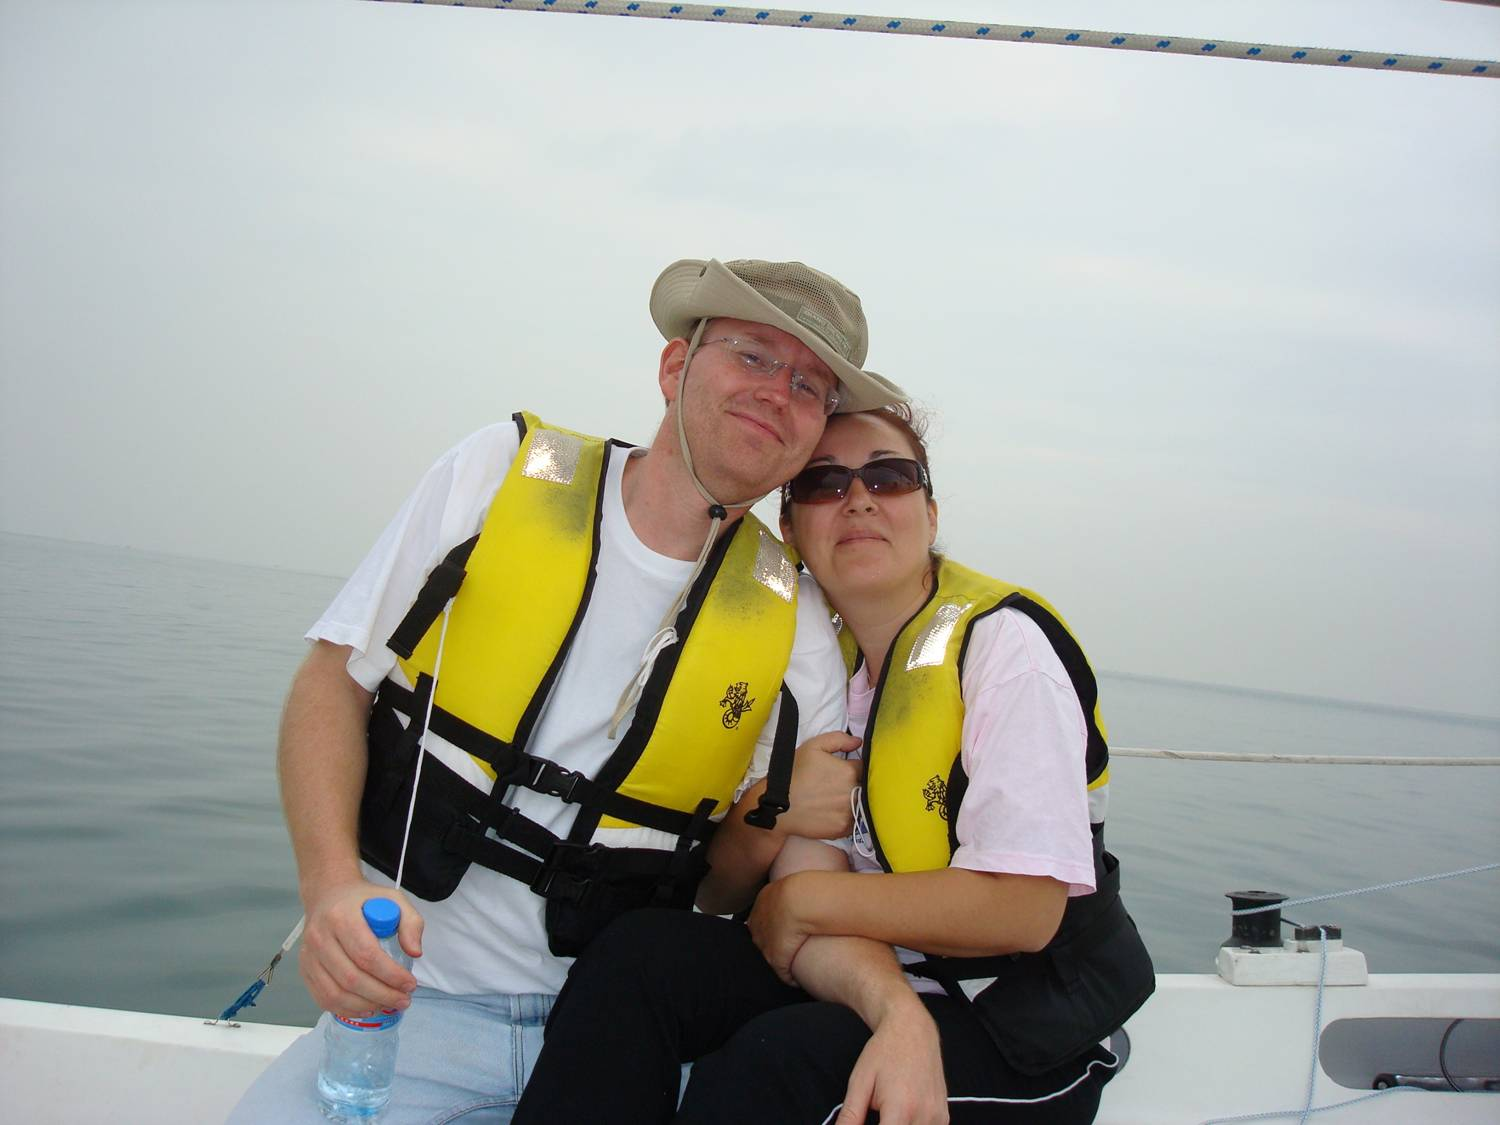 Thomas and Marina Cupples sailing with Lyndon,  Weihai,  China